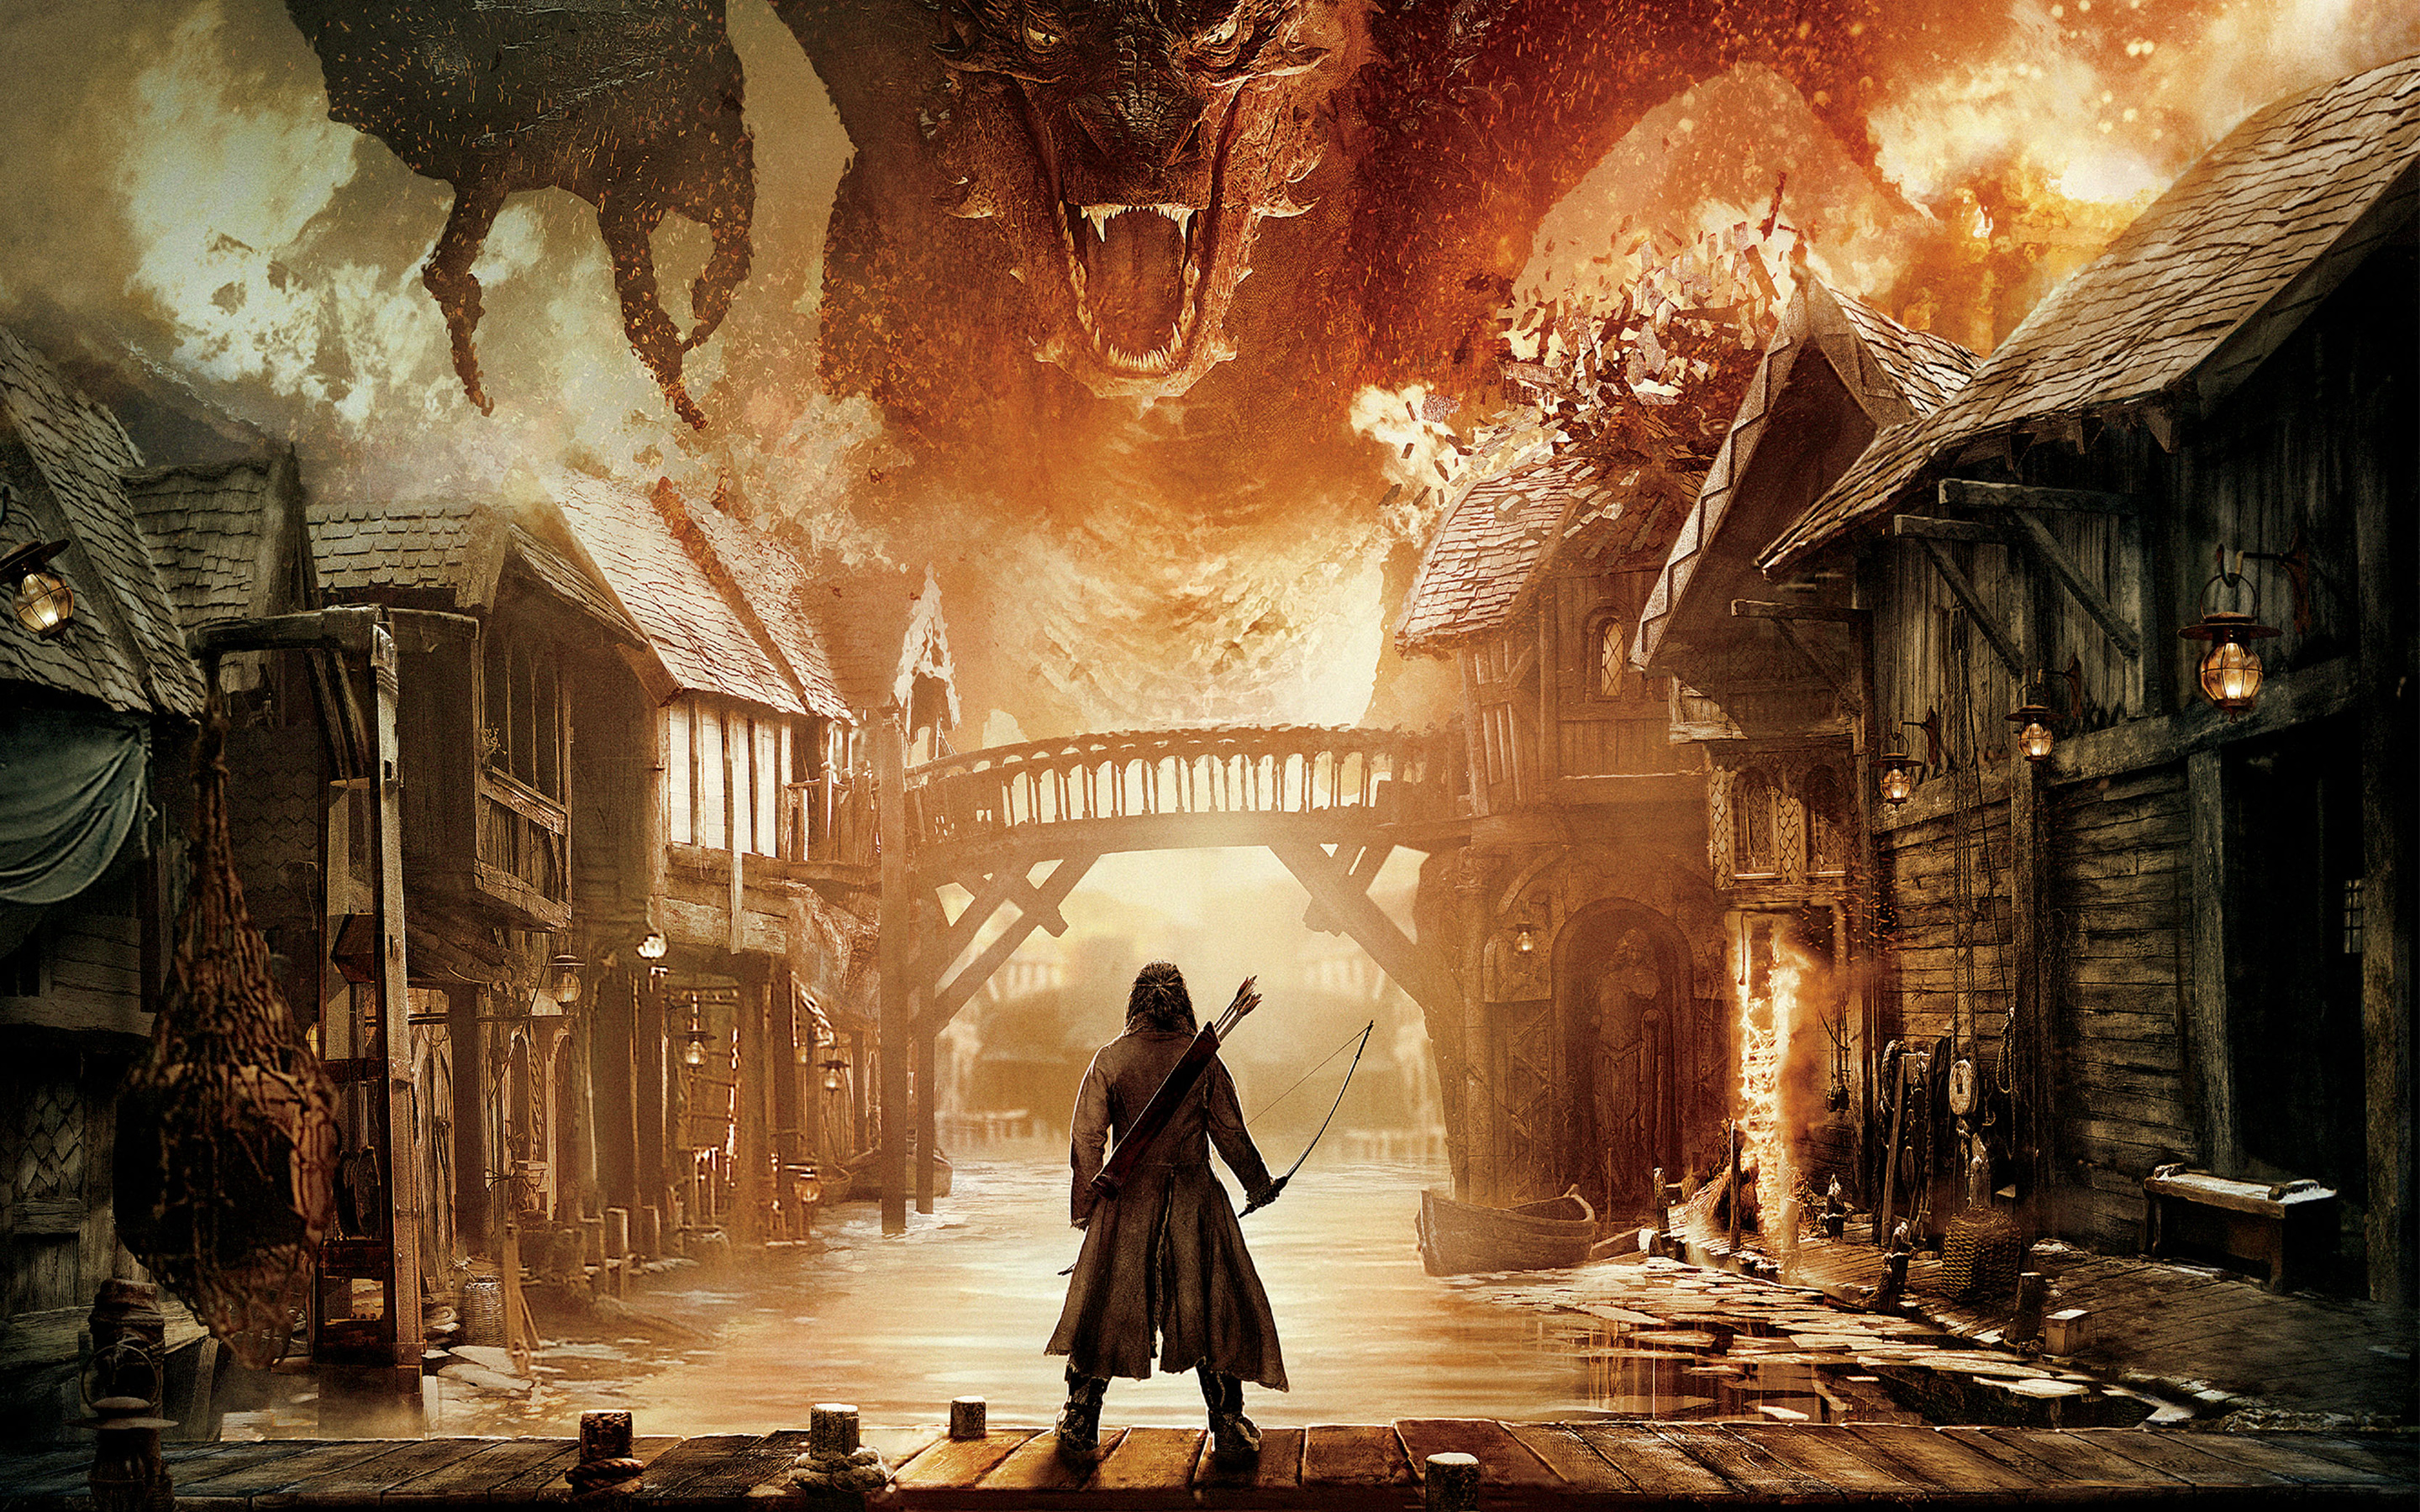 HD Wallpapers The Hobbit The Battle of the Five Armies